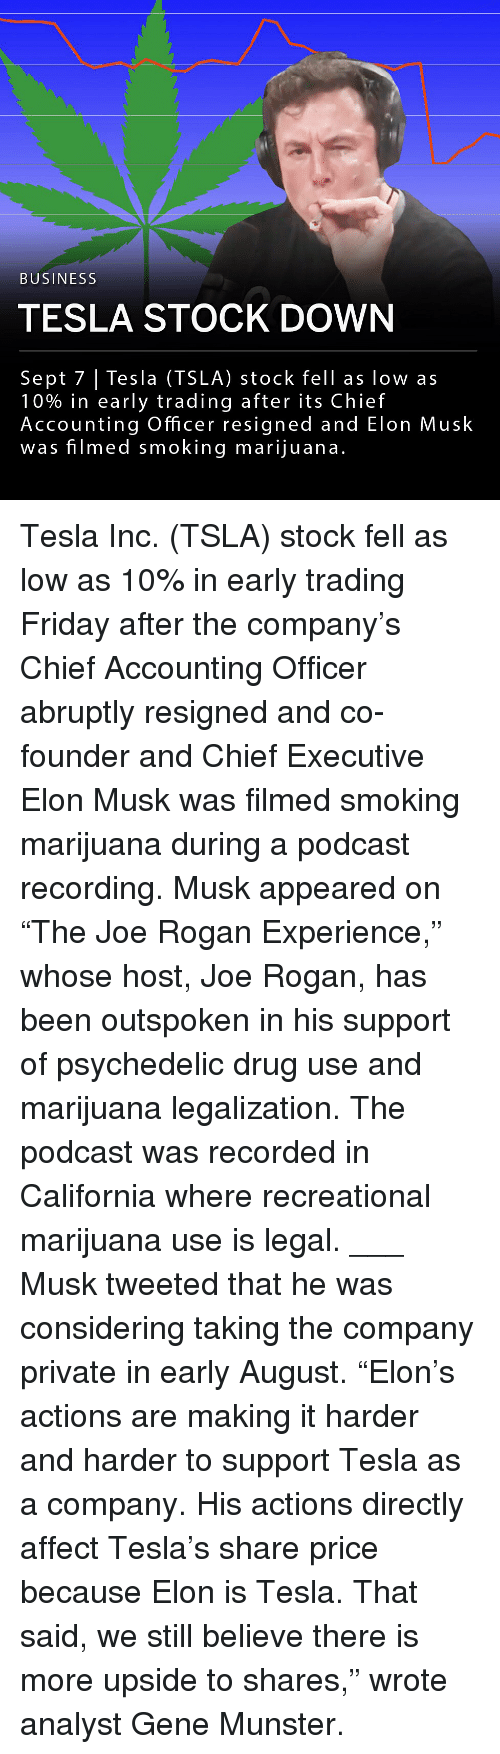 "Friday, Joe Rogan, and Memes: BUSINESS  TESLA STOCK DOWN  Sept 7 | Tesla (TSLA) stock fell as low as  10% in early trading after its Chief  Accounting Officer resigned and Elon Musk  was filmed smoking marijuana.  US Tesla Inc. (TSLA) stock fell as low as 10% in early trading Friday after the company's Chief Accounting Officer abruptly resigned and co-founder and Chief Executive Elon Musk was filmed smoking marijuana during a podcast recording. Musk appeared on ""The Joe Rogan Experience,"" whose host, Joe Rogan, has been outspoken in his support of psychedelic drug use and marijuana legalization. The podcast was recorded in California where recreational marijuana use is legal. ___ Musk tweeted that he was considering taking the company private in early August. ""Elon's actions are making it harder and harder to support Tesla as a company. His actions directly affect Tesla's share price because Elon is Tesla. That said, we still believe there is more upside to shares,"" wrote analyst Gene Munster."